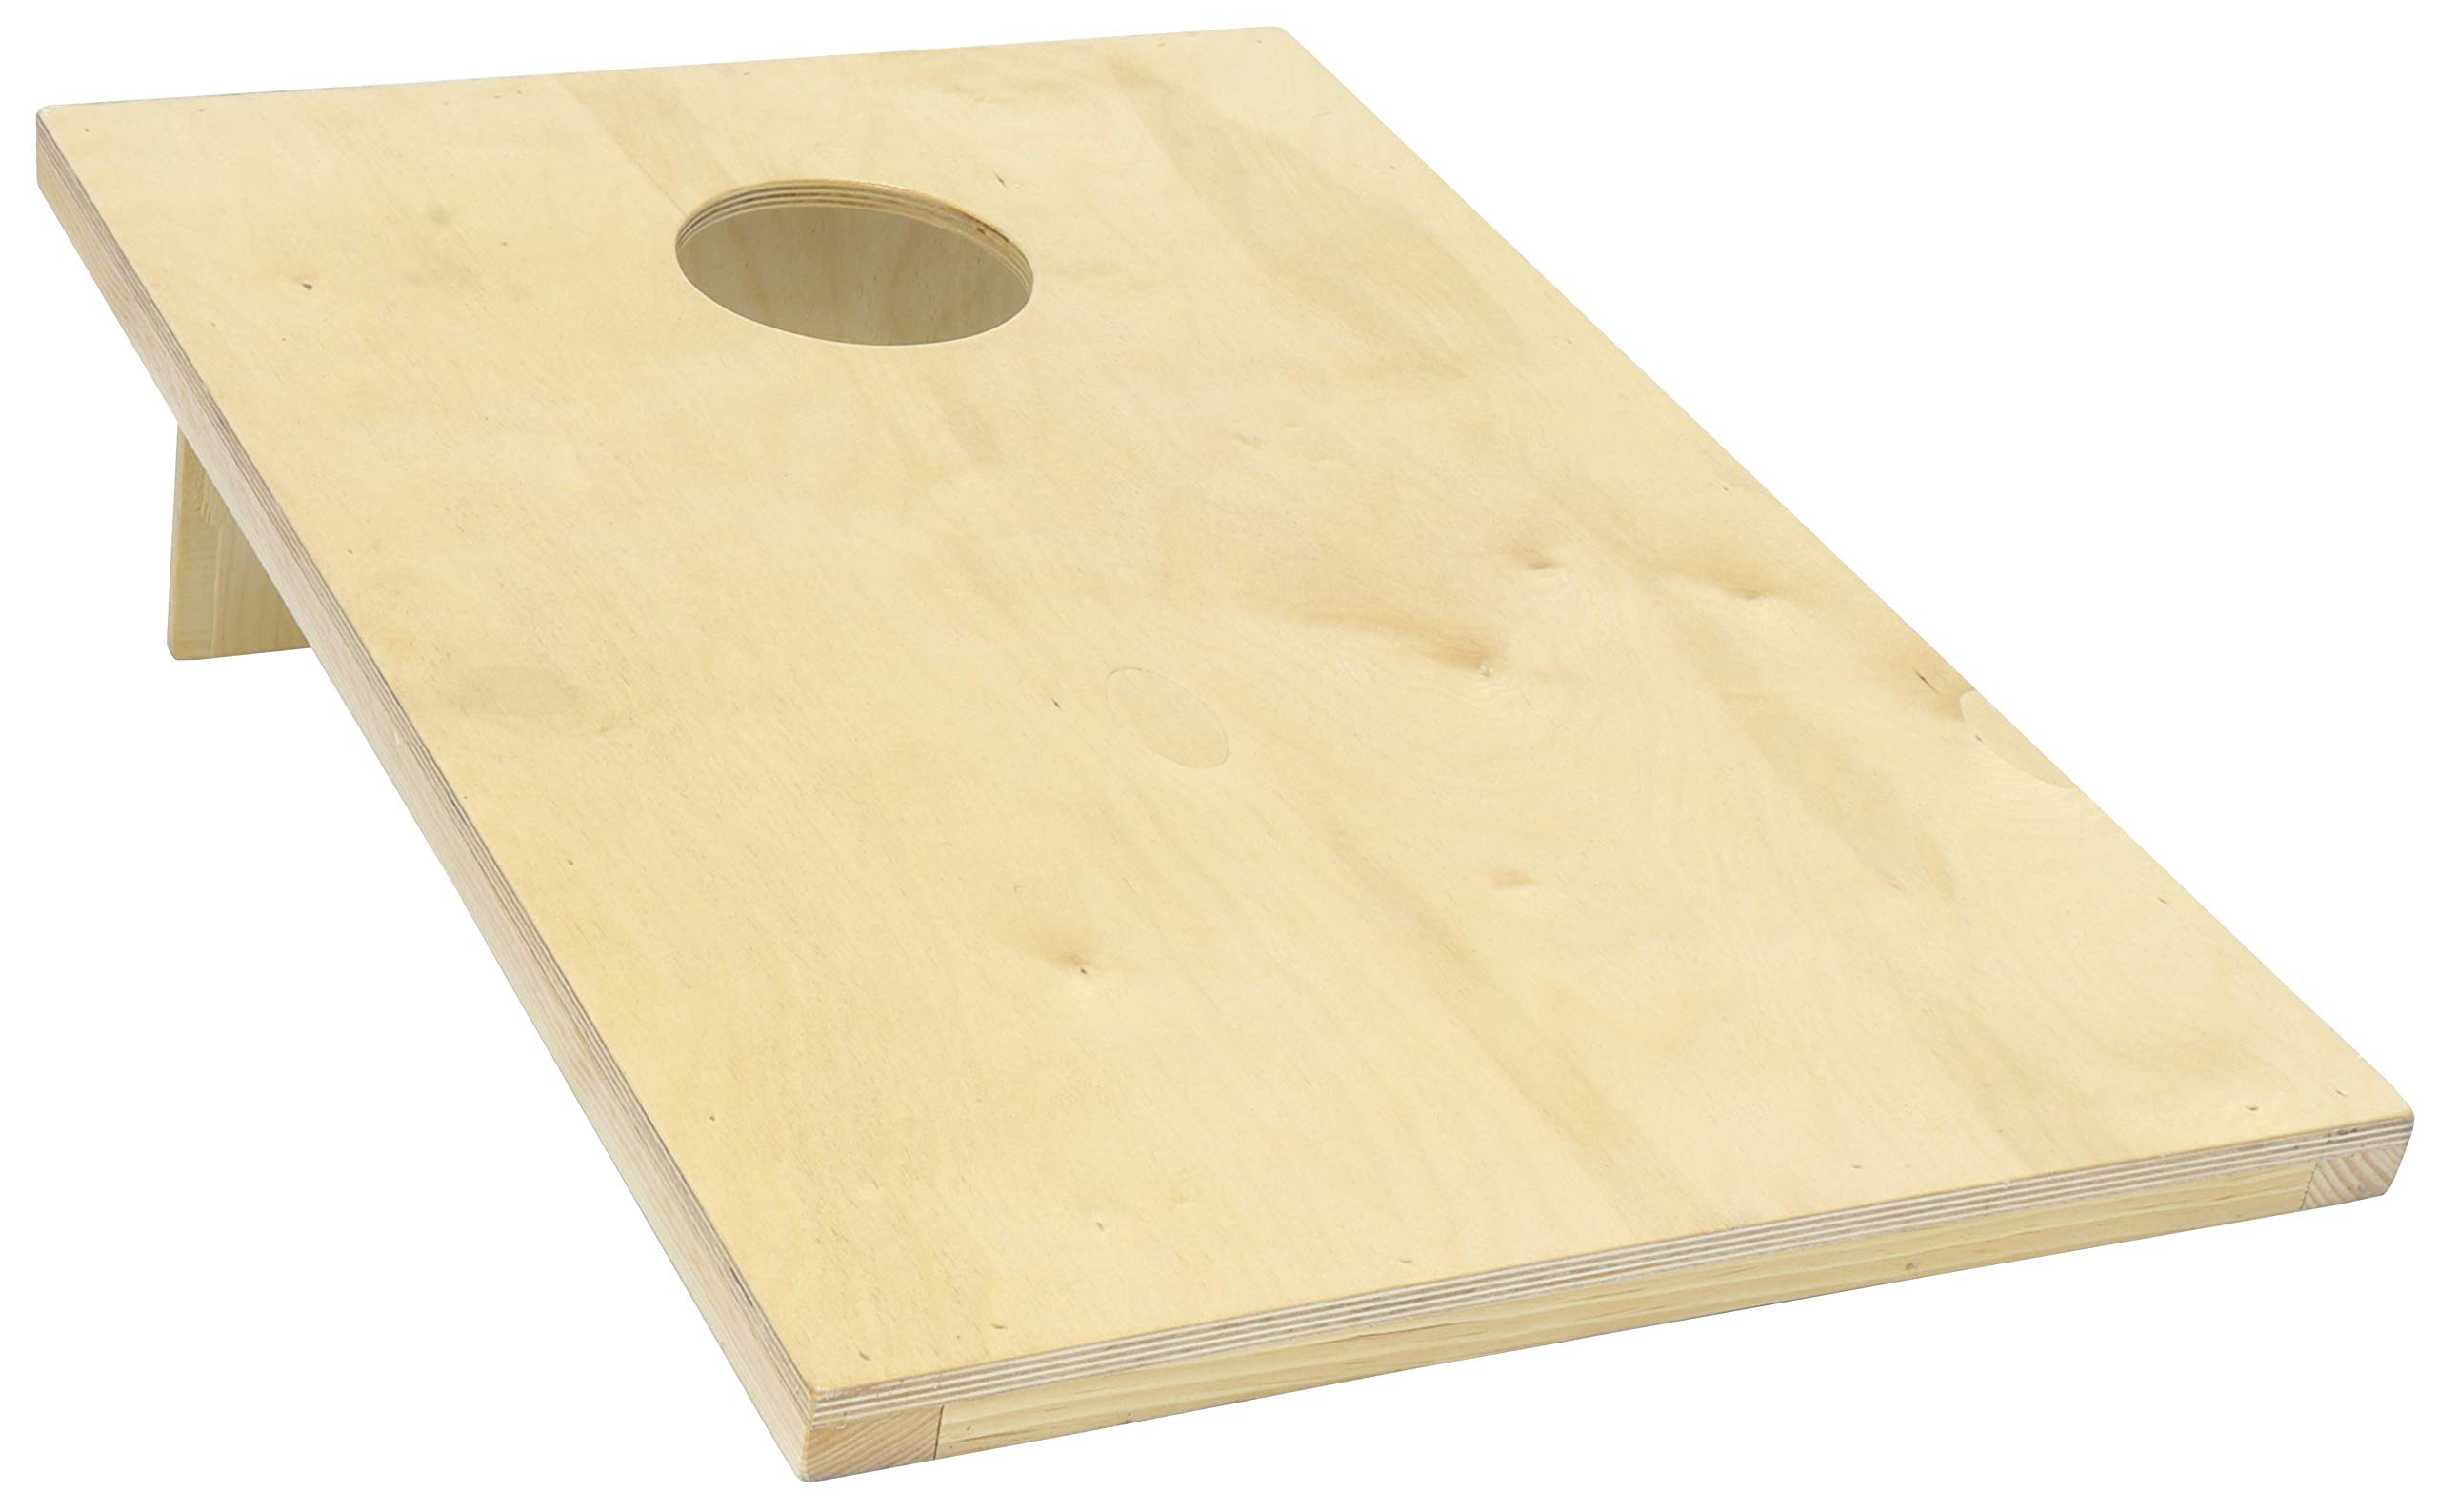 Pennsylvania Woodworks Cornhole Game Set :: 2 Solid Wood Corn Toss Boards + 8 Corn Filled Bean Bags :: Tailgate Size, Weather Resistant Finish, 30'' x 24'' :: Slim, Foldable & Portable by Pennsylvania Woodworks (Image #2)